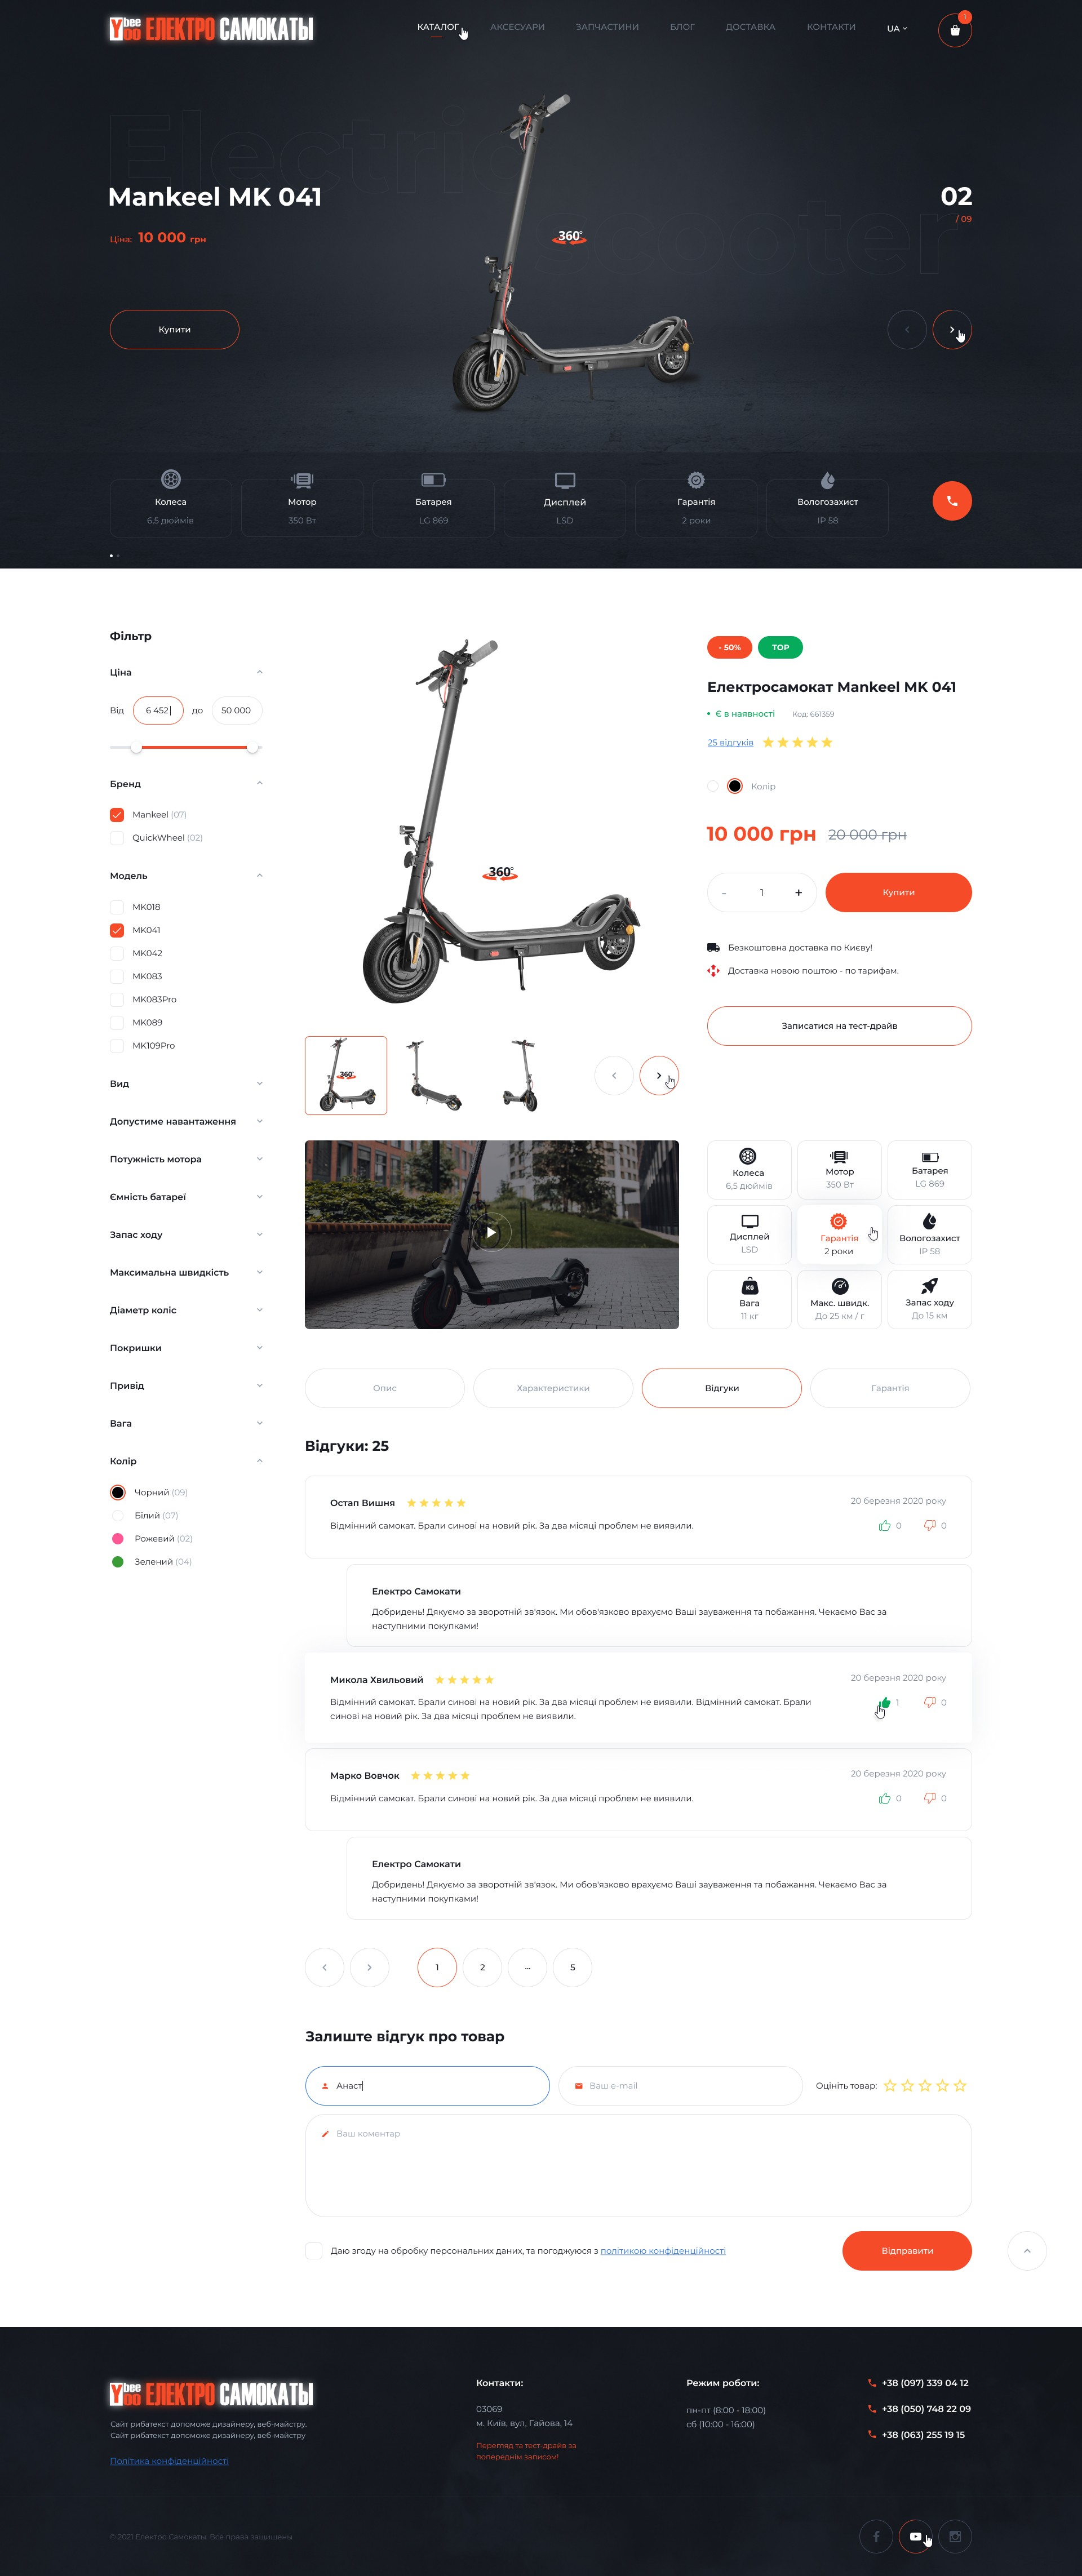 Scooter_01.1_Home_1.0